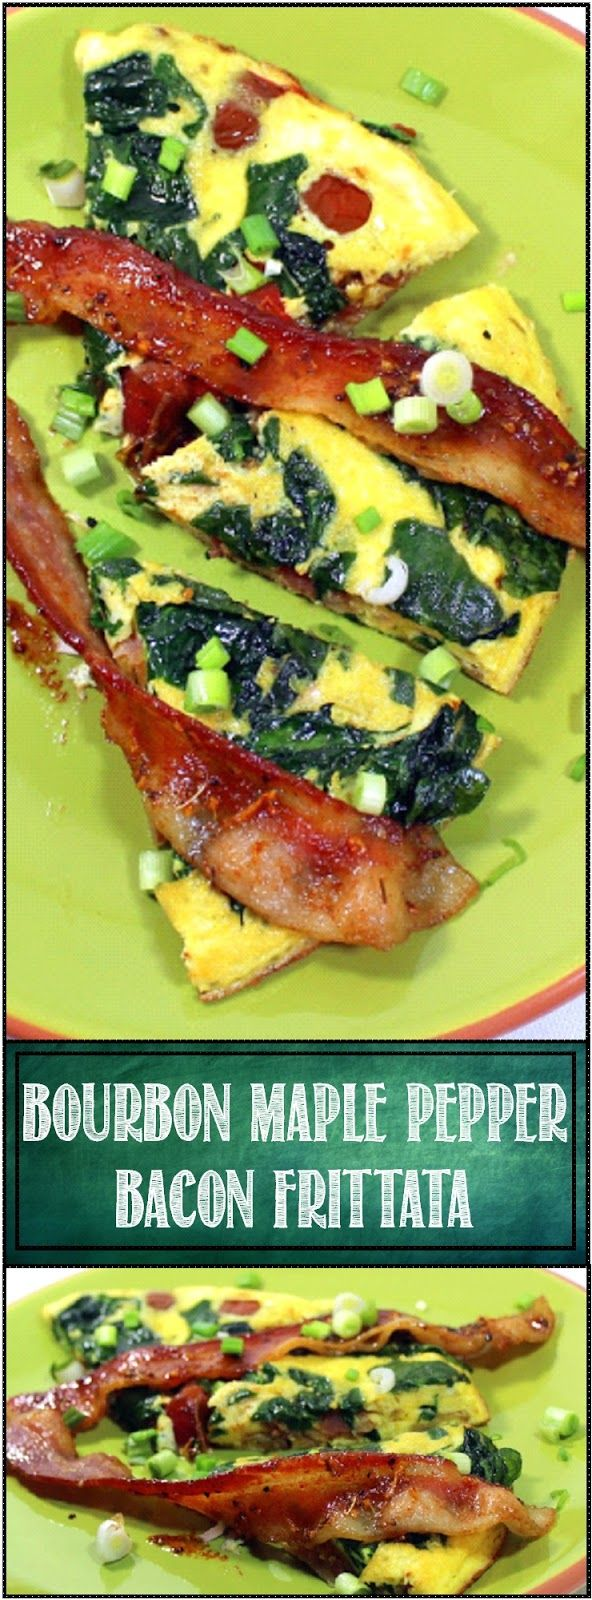 Spinach and BOURBON MAPLE PEPPER BACON Frittat...It's almost a Quiche Lorraine Fritatta, but I added some Tomatoes and Spinach for color AND some AMAZING Glazed BACON... BOURBON - MAPLE SYRUP - FRESH CRACKED PEPPER BACON BACON BACON best omelette EVER!